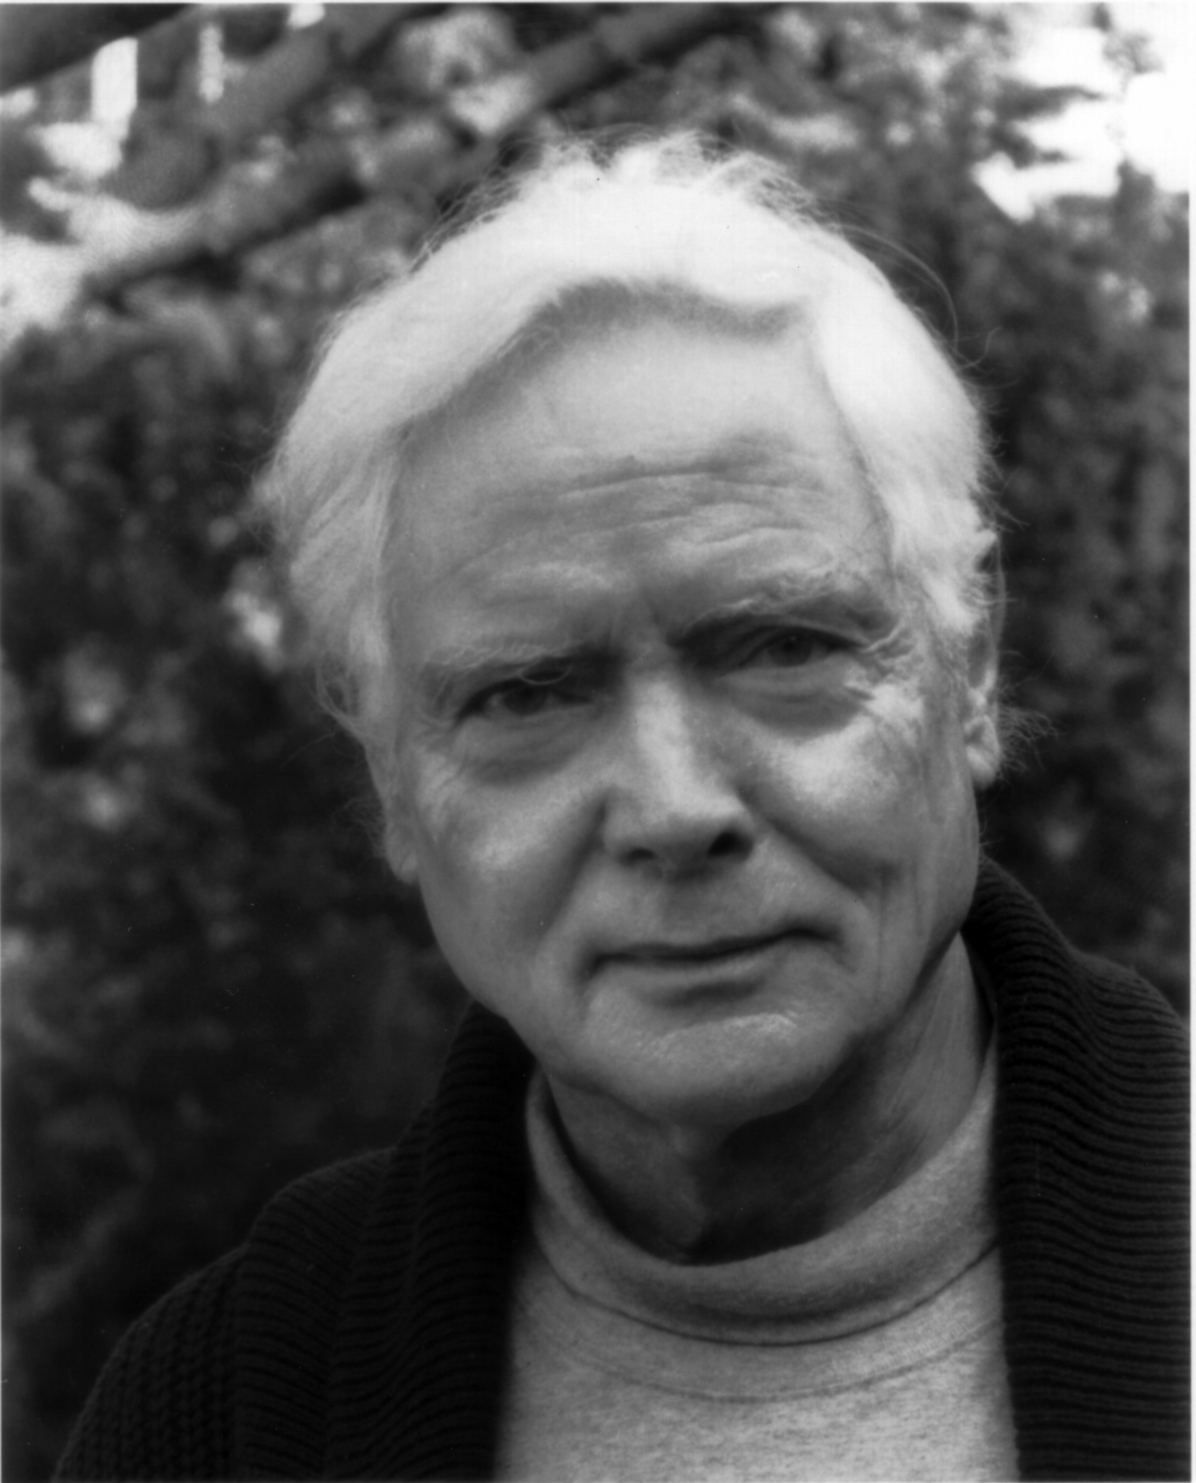 w.s. merwin essays Ws merwin is better known as a poet, but i for one appreciate his prose writing, both its content and its craftsmanship the ends of the earth is a collection of eight essays, three somewhat lengthy (47 to 84 pages) and five shorter ones (9 to 26 pages.